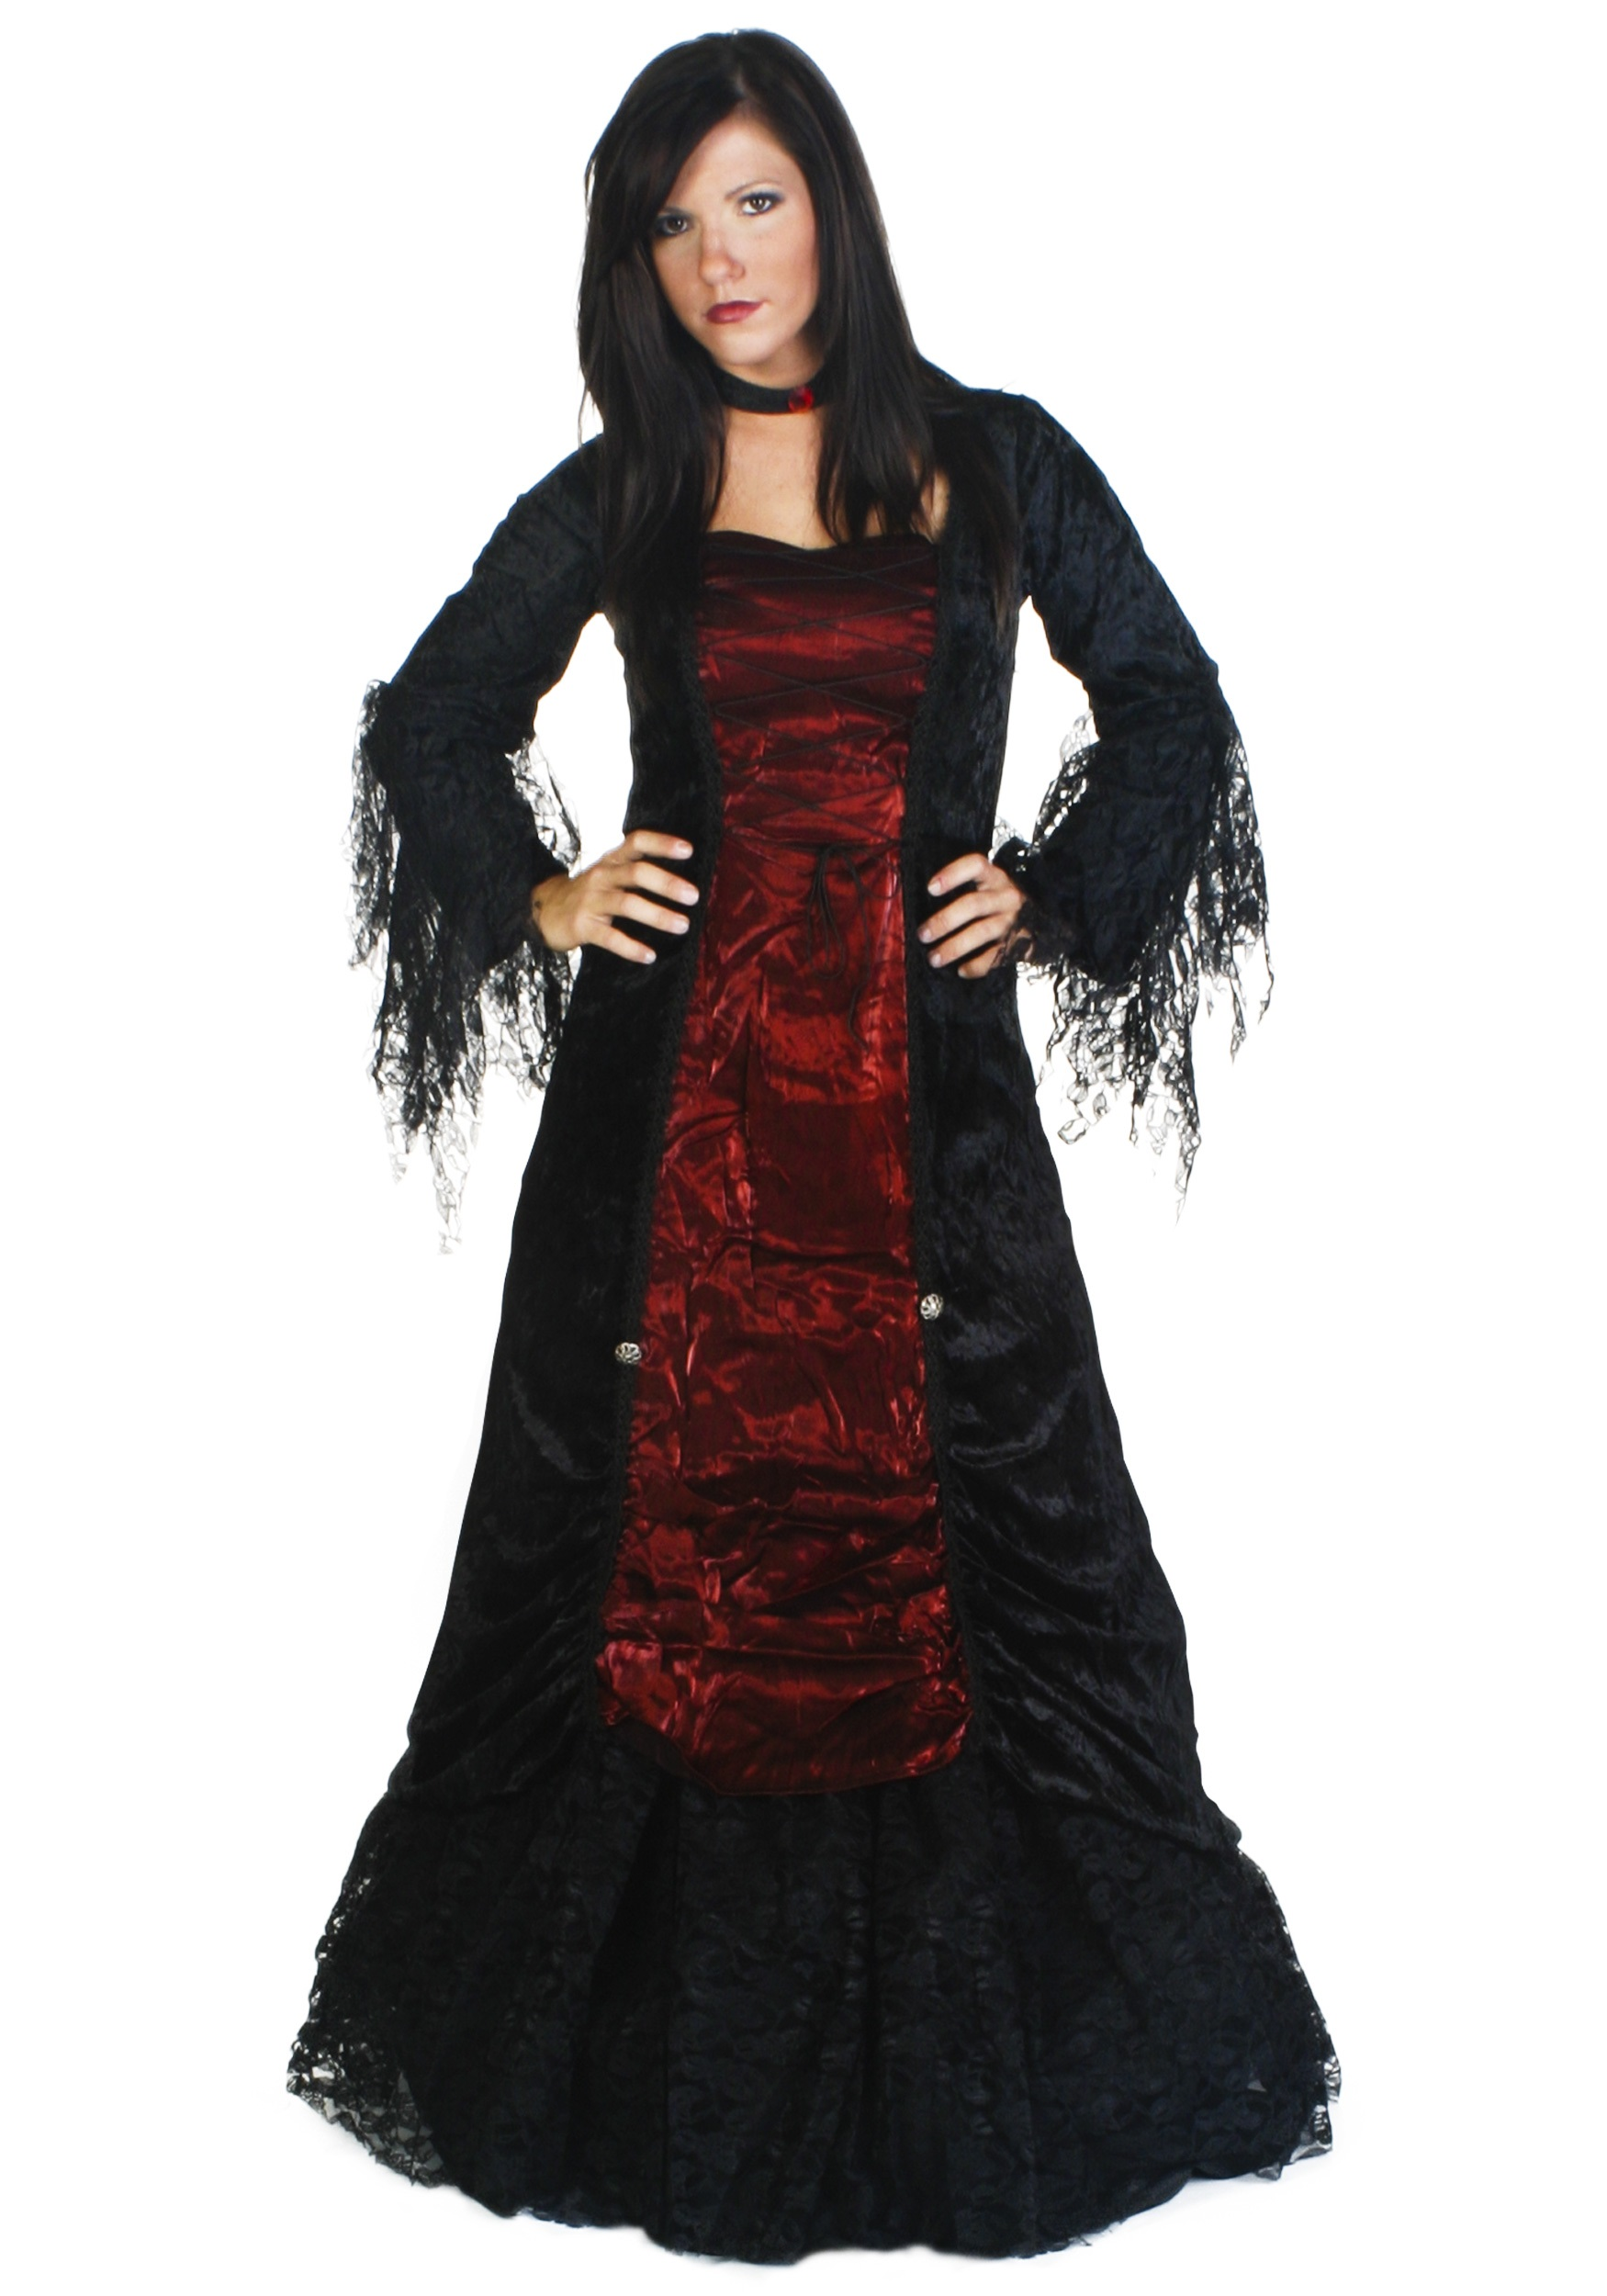 Womenu0027s Gothic V&ire Costume  sc 1 st  Halloween Costumes & Womenu0027s Gothic Vampire Costume - Halloween Costumes